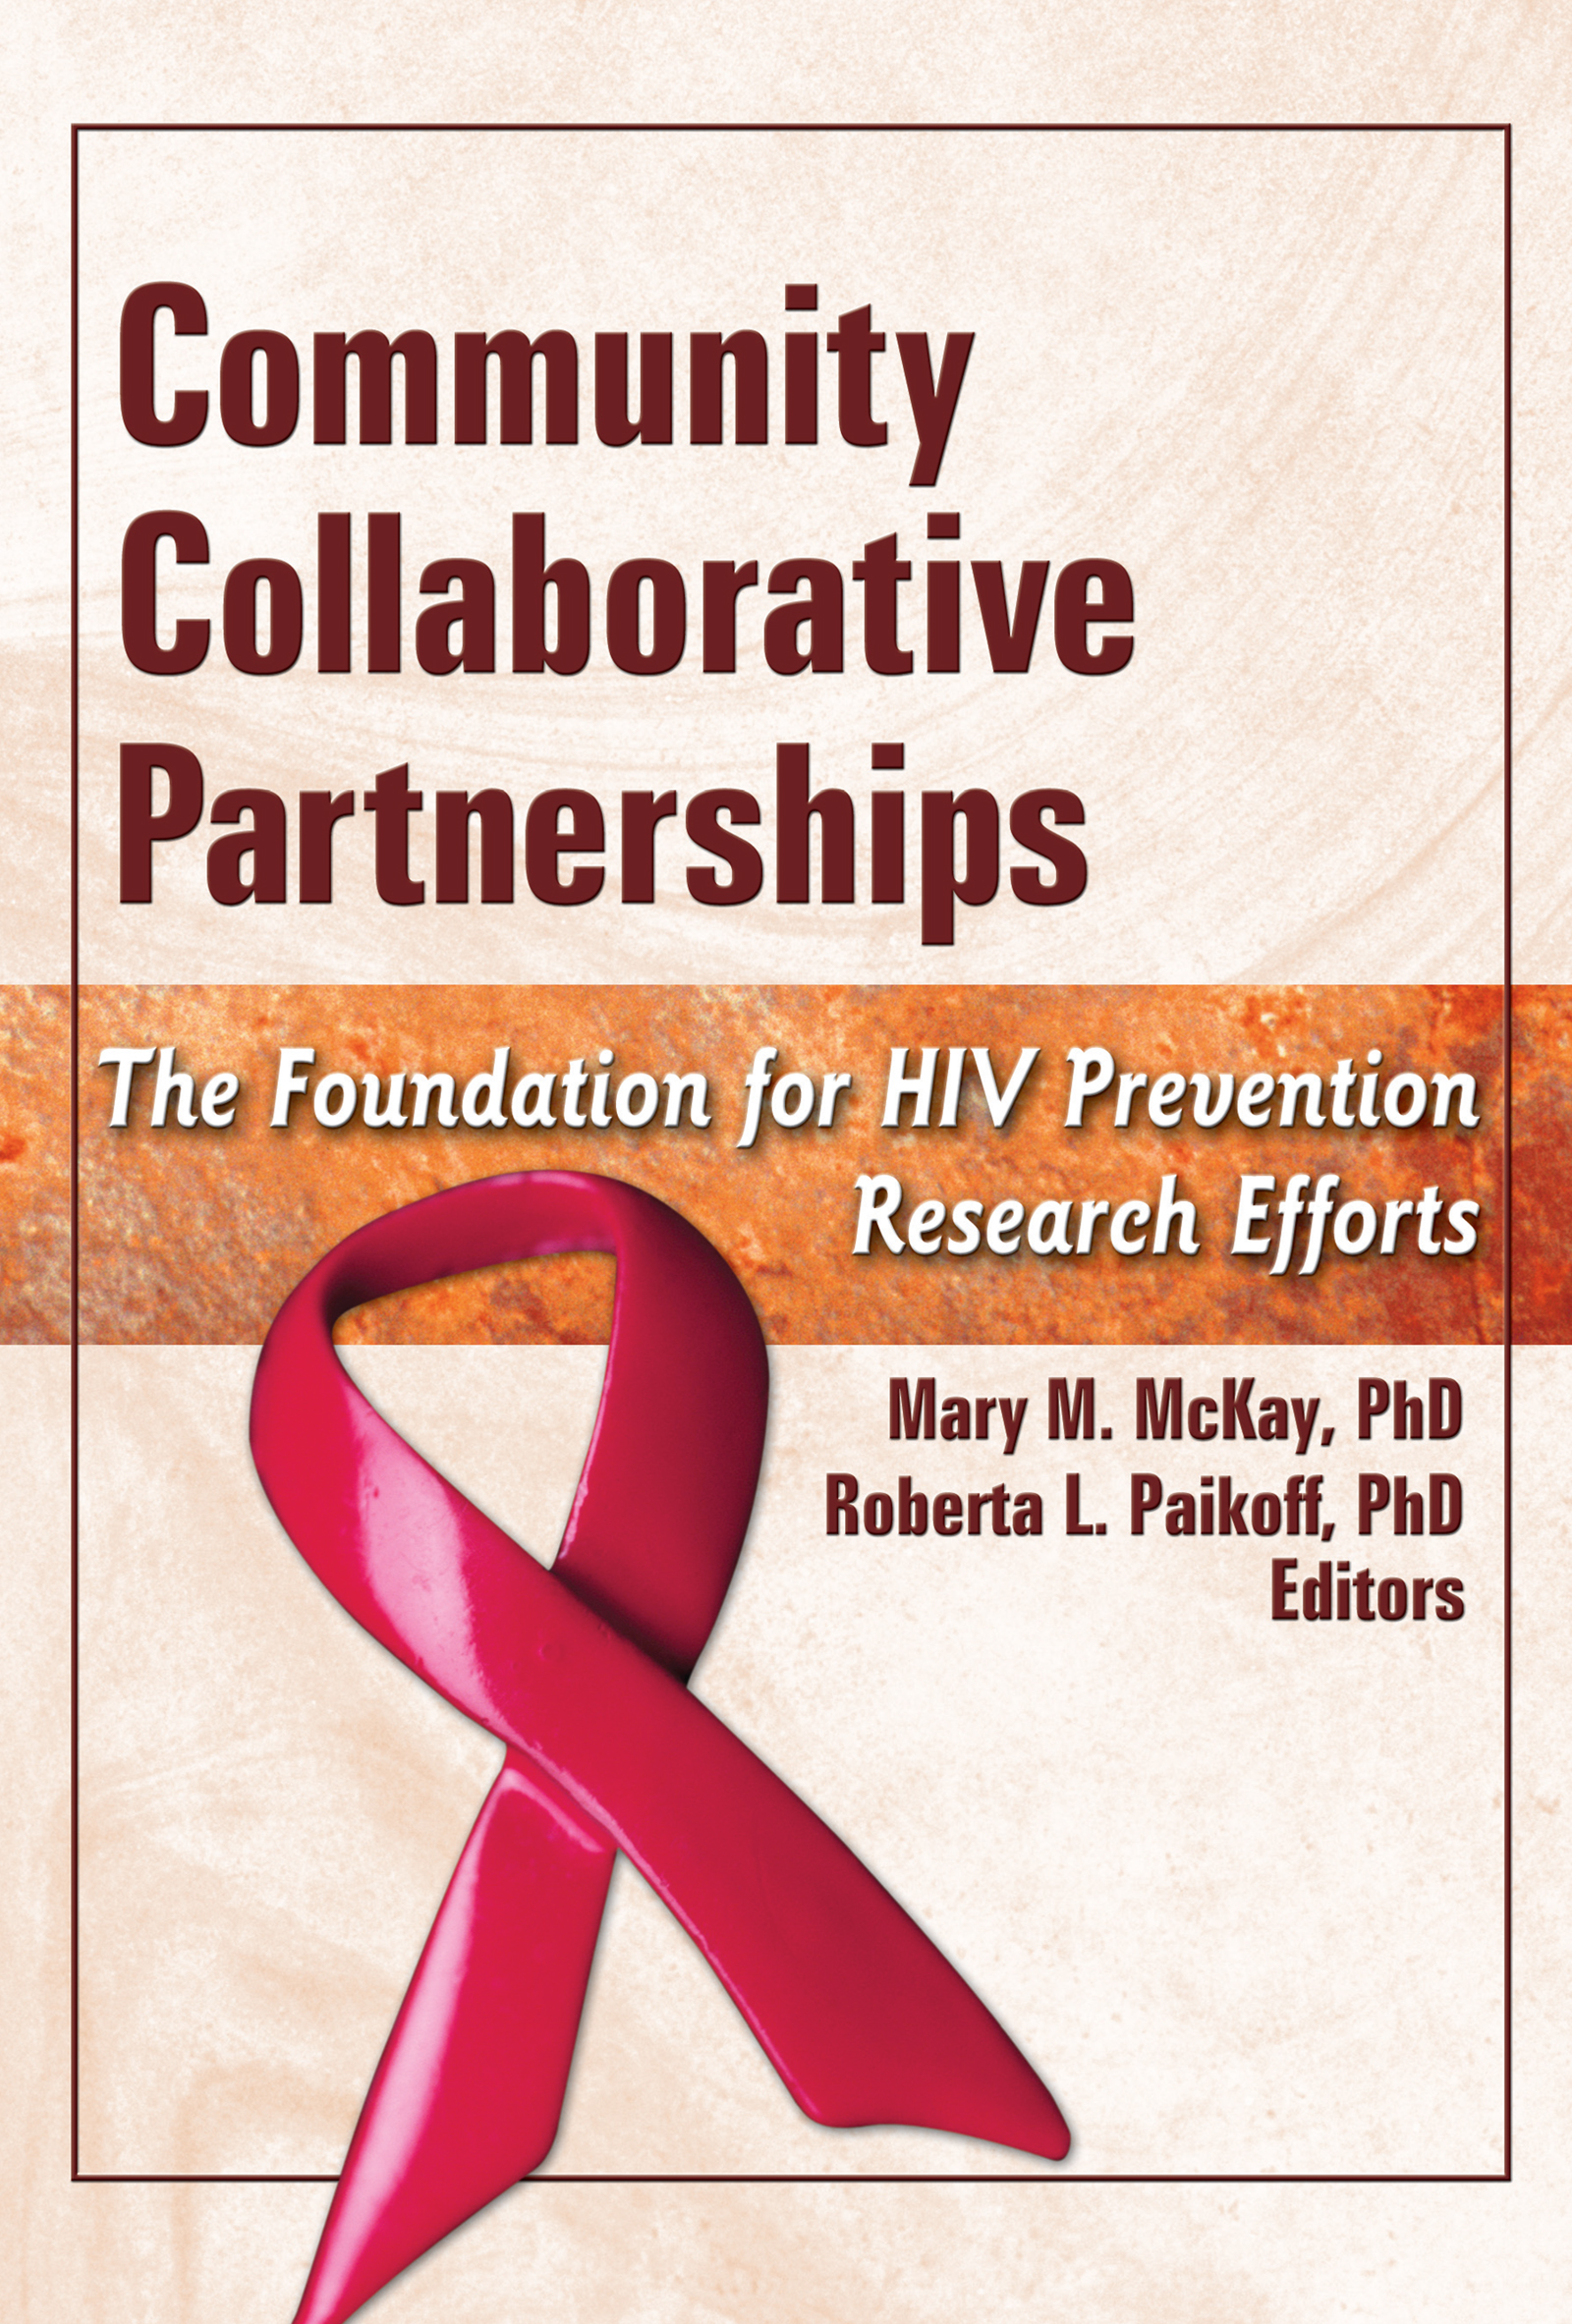 Understanding the African American Research Experience (KAARE): Implications for HIV Prevention: Dara Kerkorian, Dorian E. Traube and Mary M. McKay